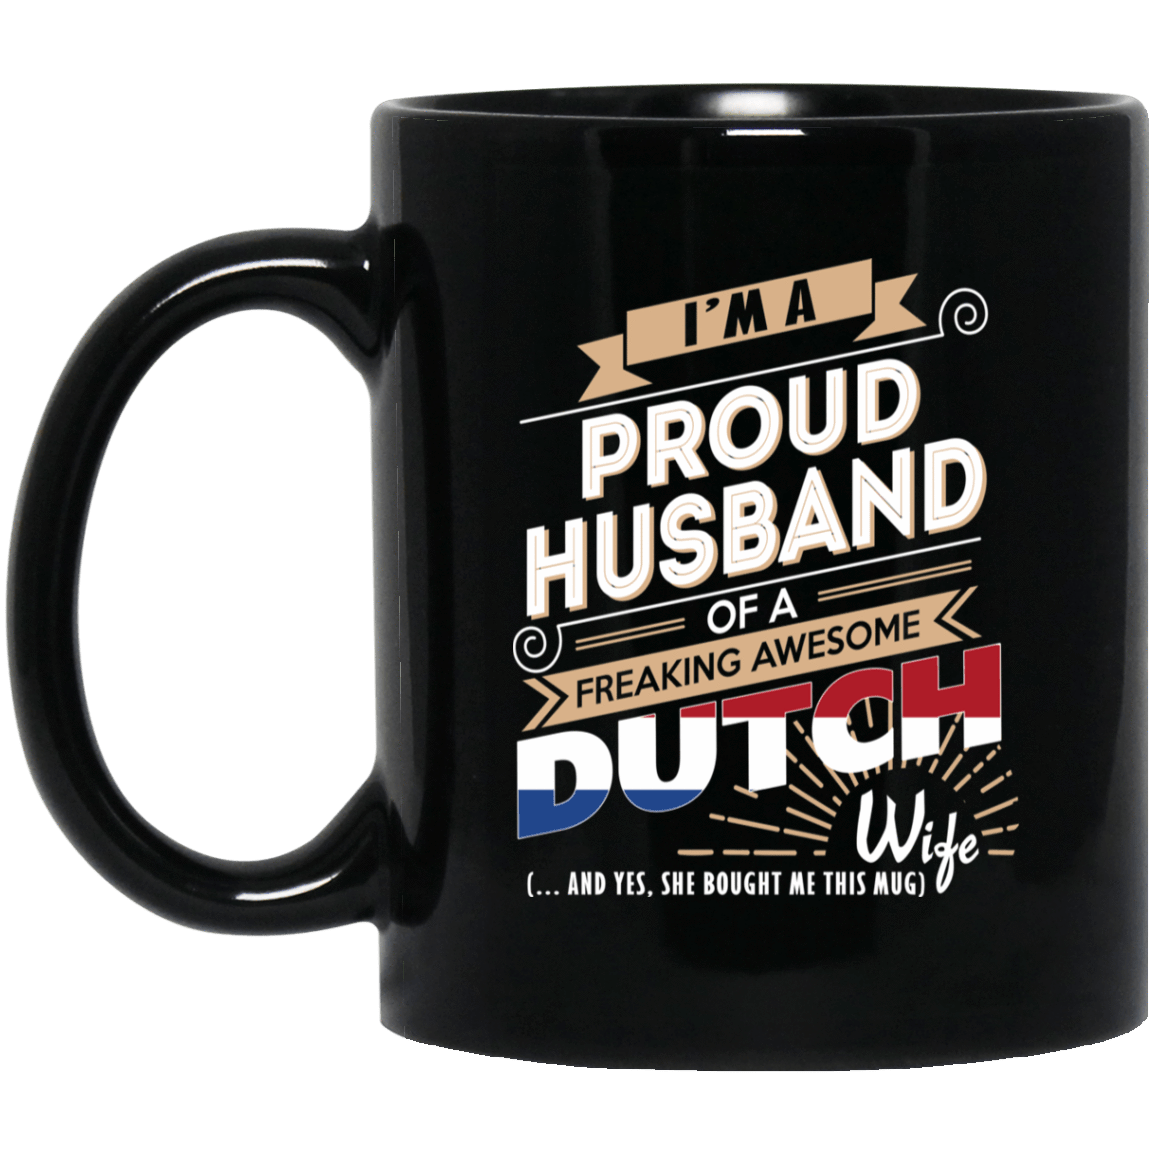 Proud Husband Of A Freaking Awesome Dutch Wife Mug 1065-10181-72136511-49307 - Tee Ript